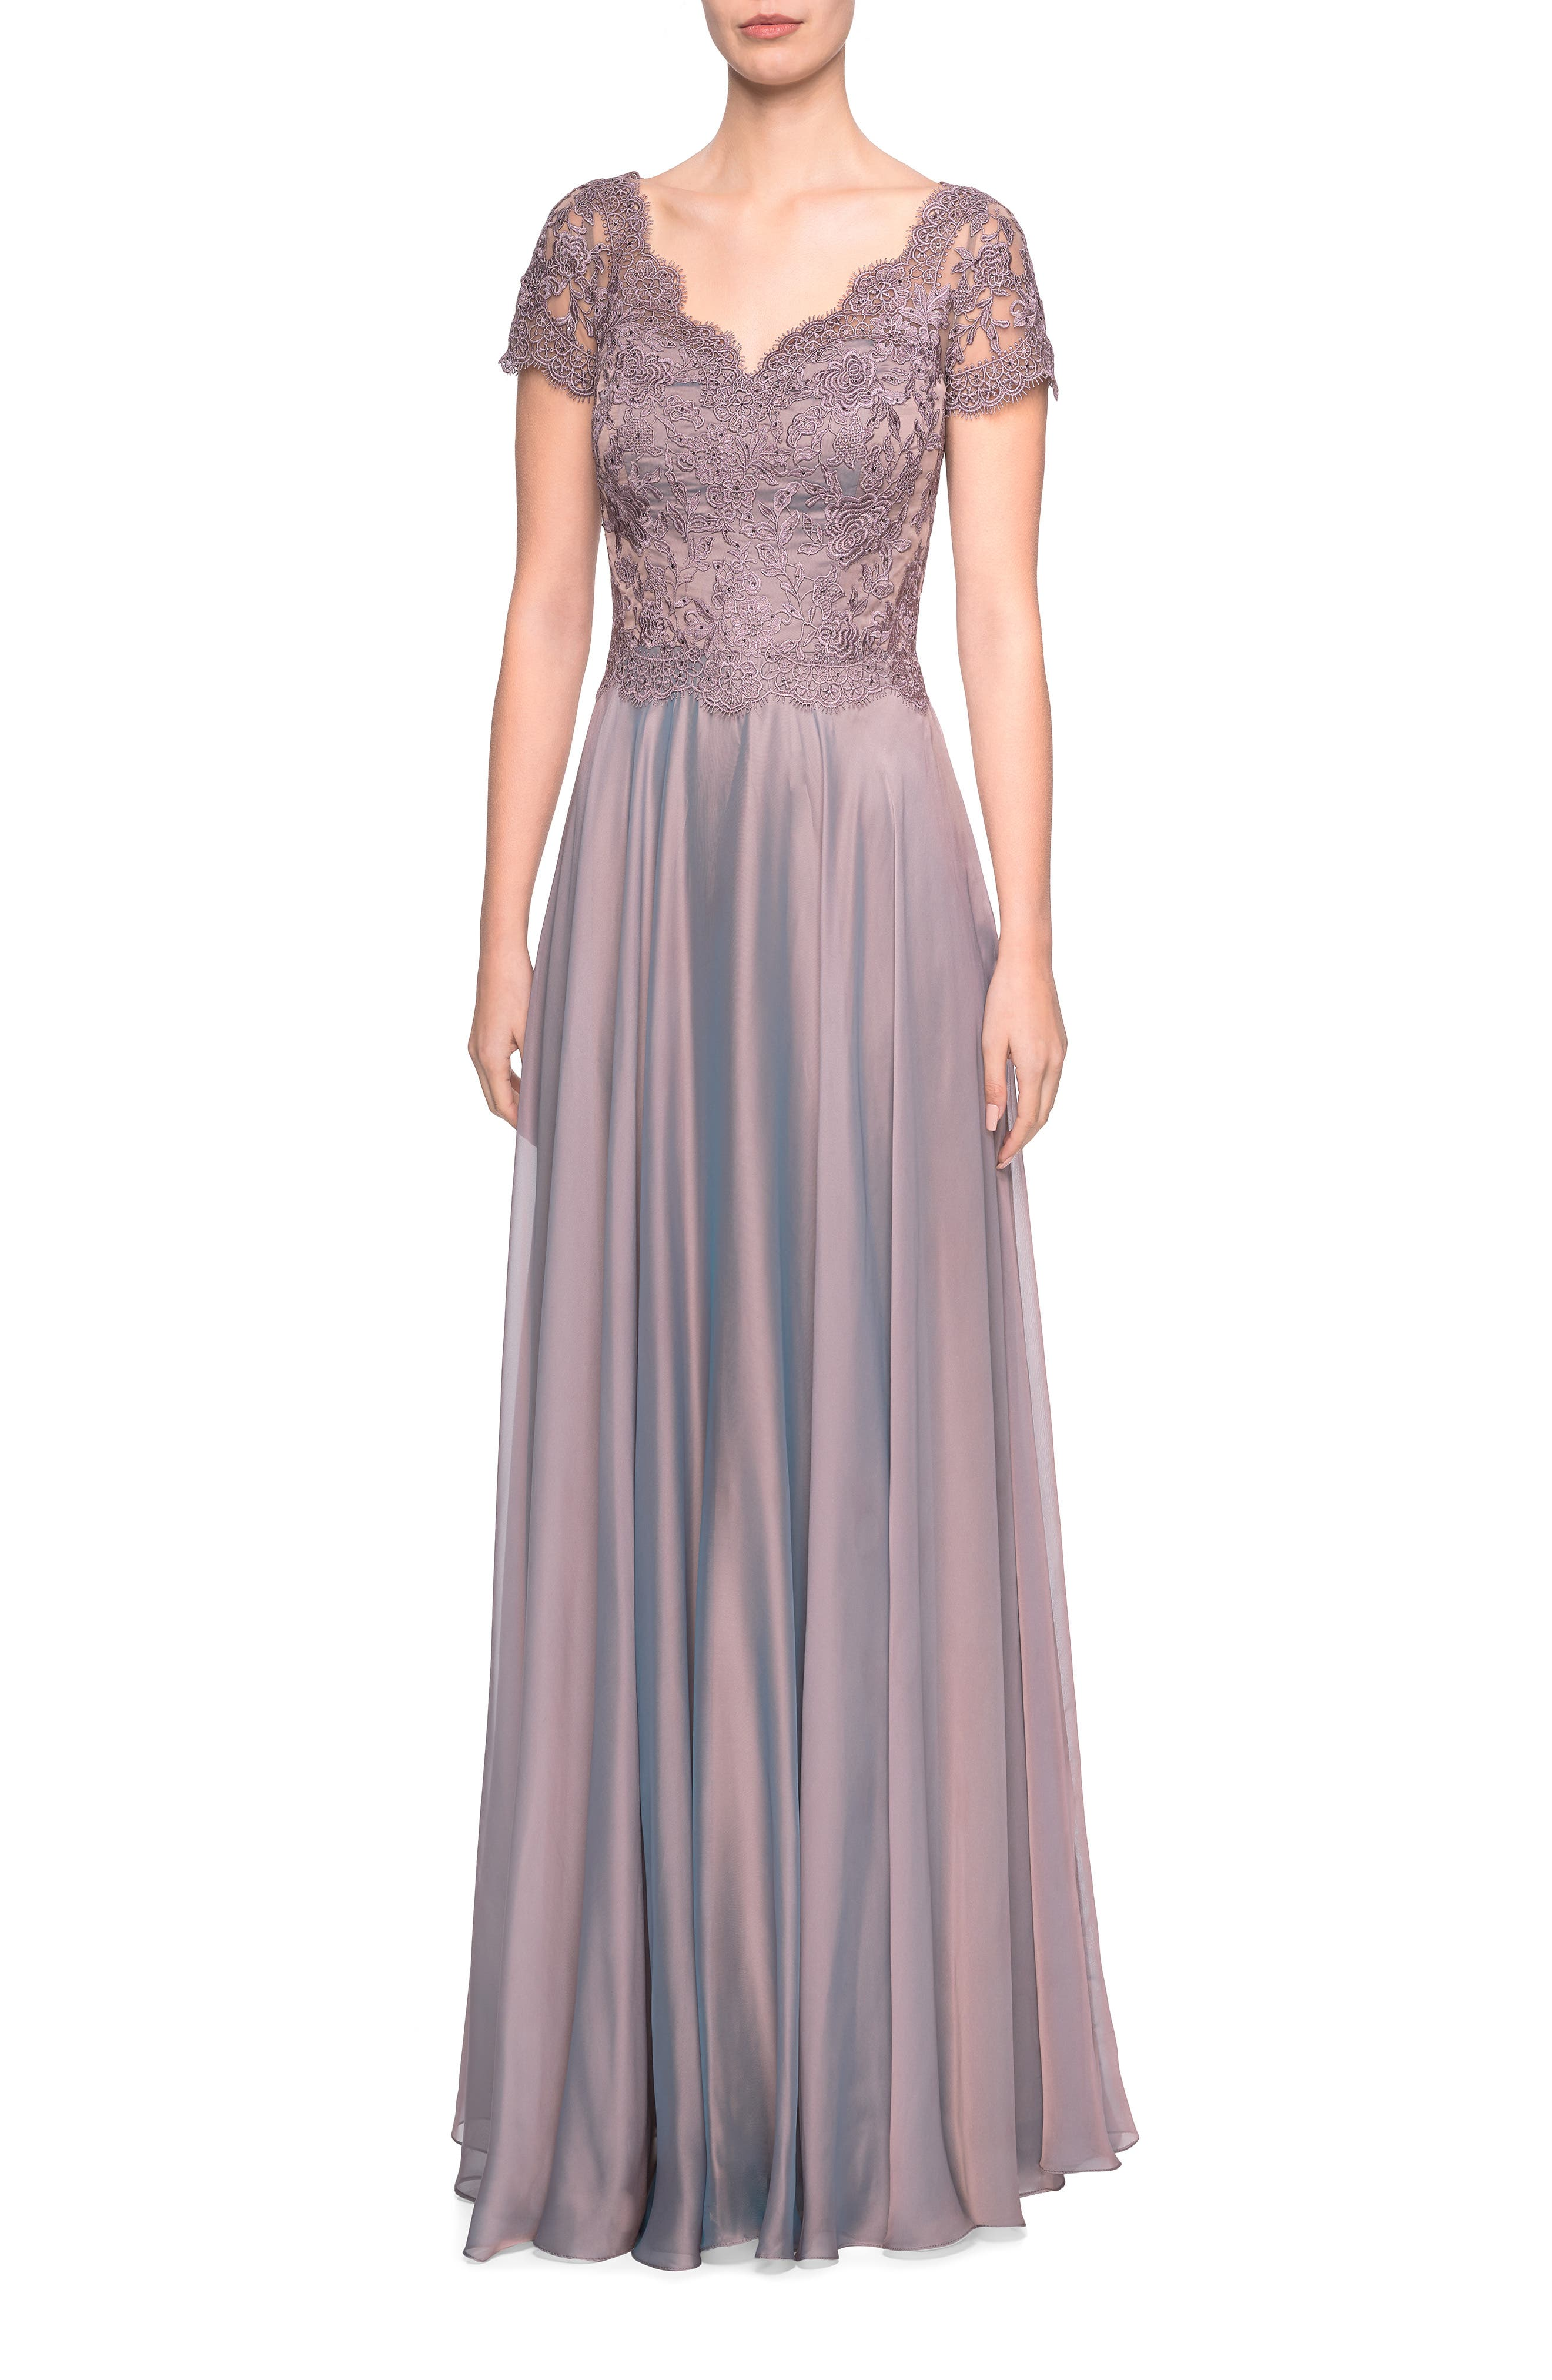 La Femme Embroidered Lace & Chiffon Evening Dress, Brown